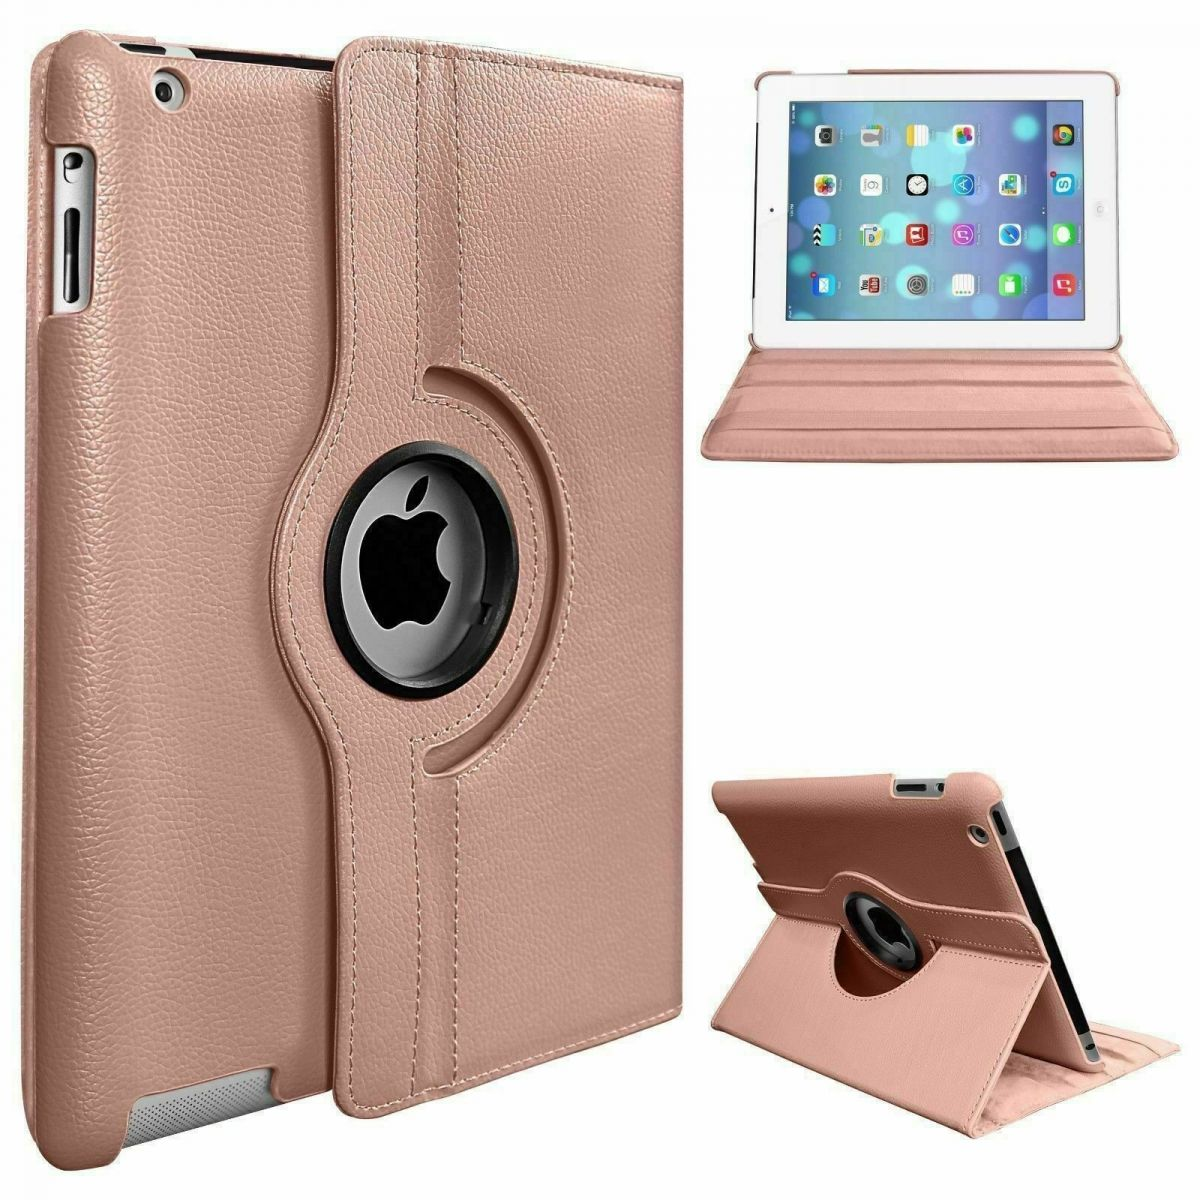 Leather PU 360 Rotating Smart Case iPad Air Cover